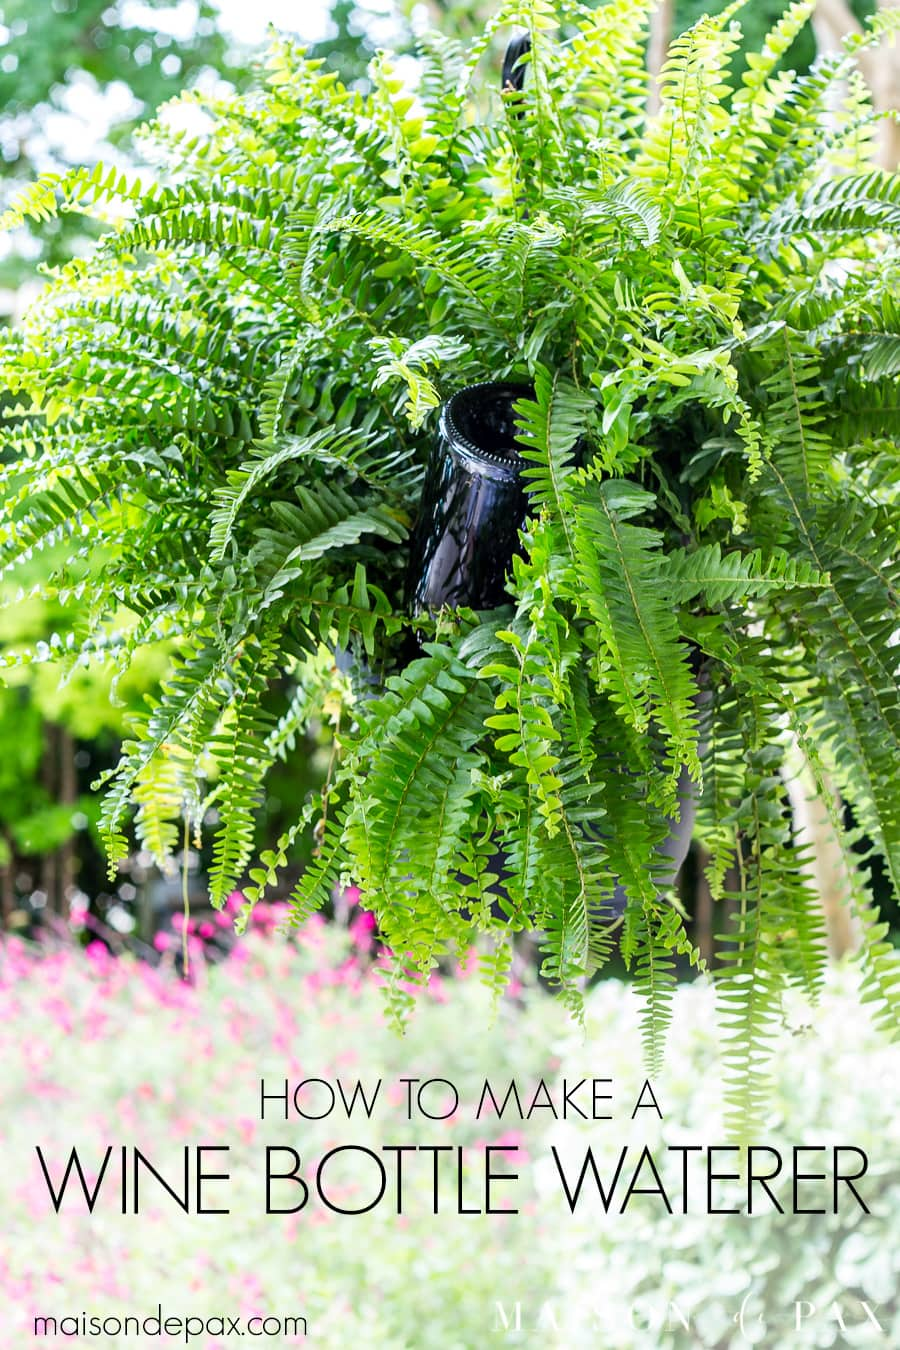 Learn how to make a wine bottle plant waterer to keep your hanging plants healthy and your patio gorgeous this summer! #winebottlewaterer #winebottle #upcycle #garden #gardening #diygardening #hangingplants #bostonfern #summergarden